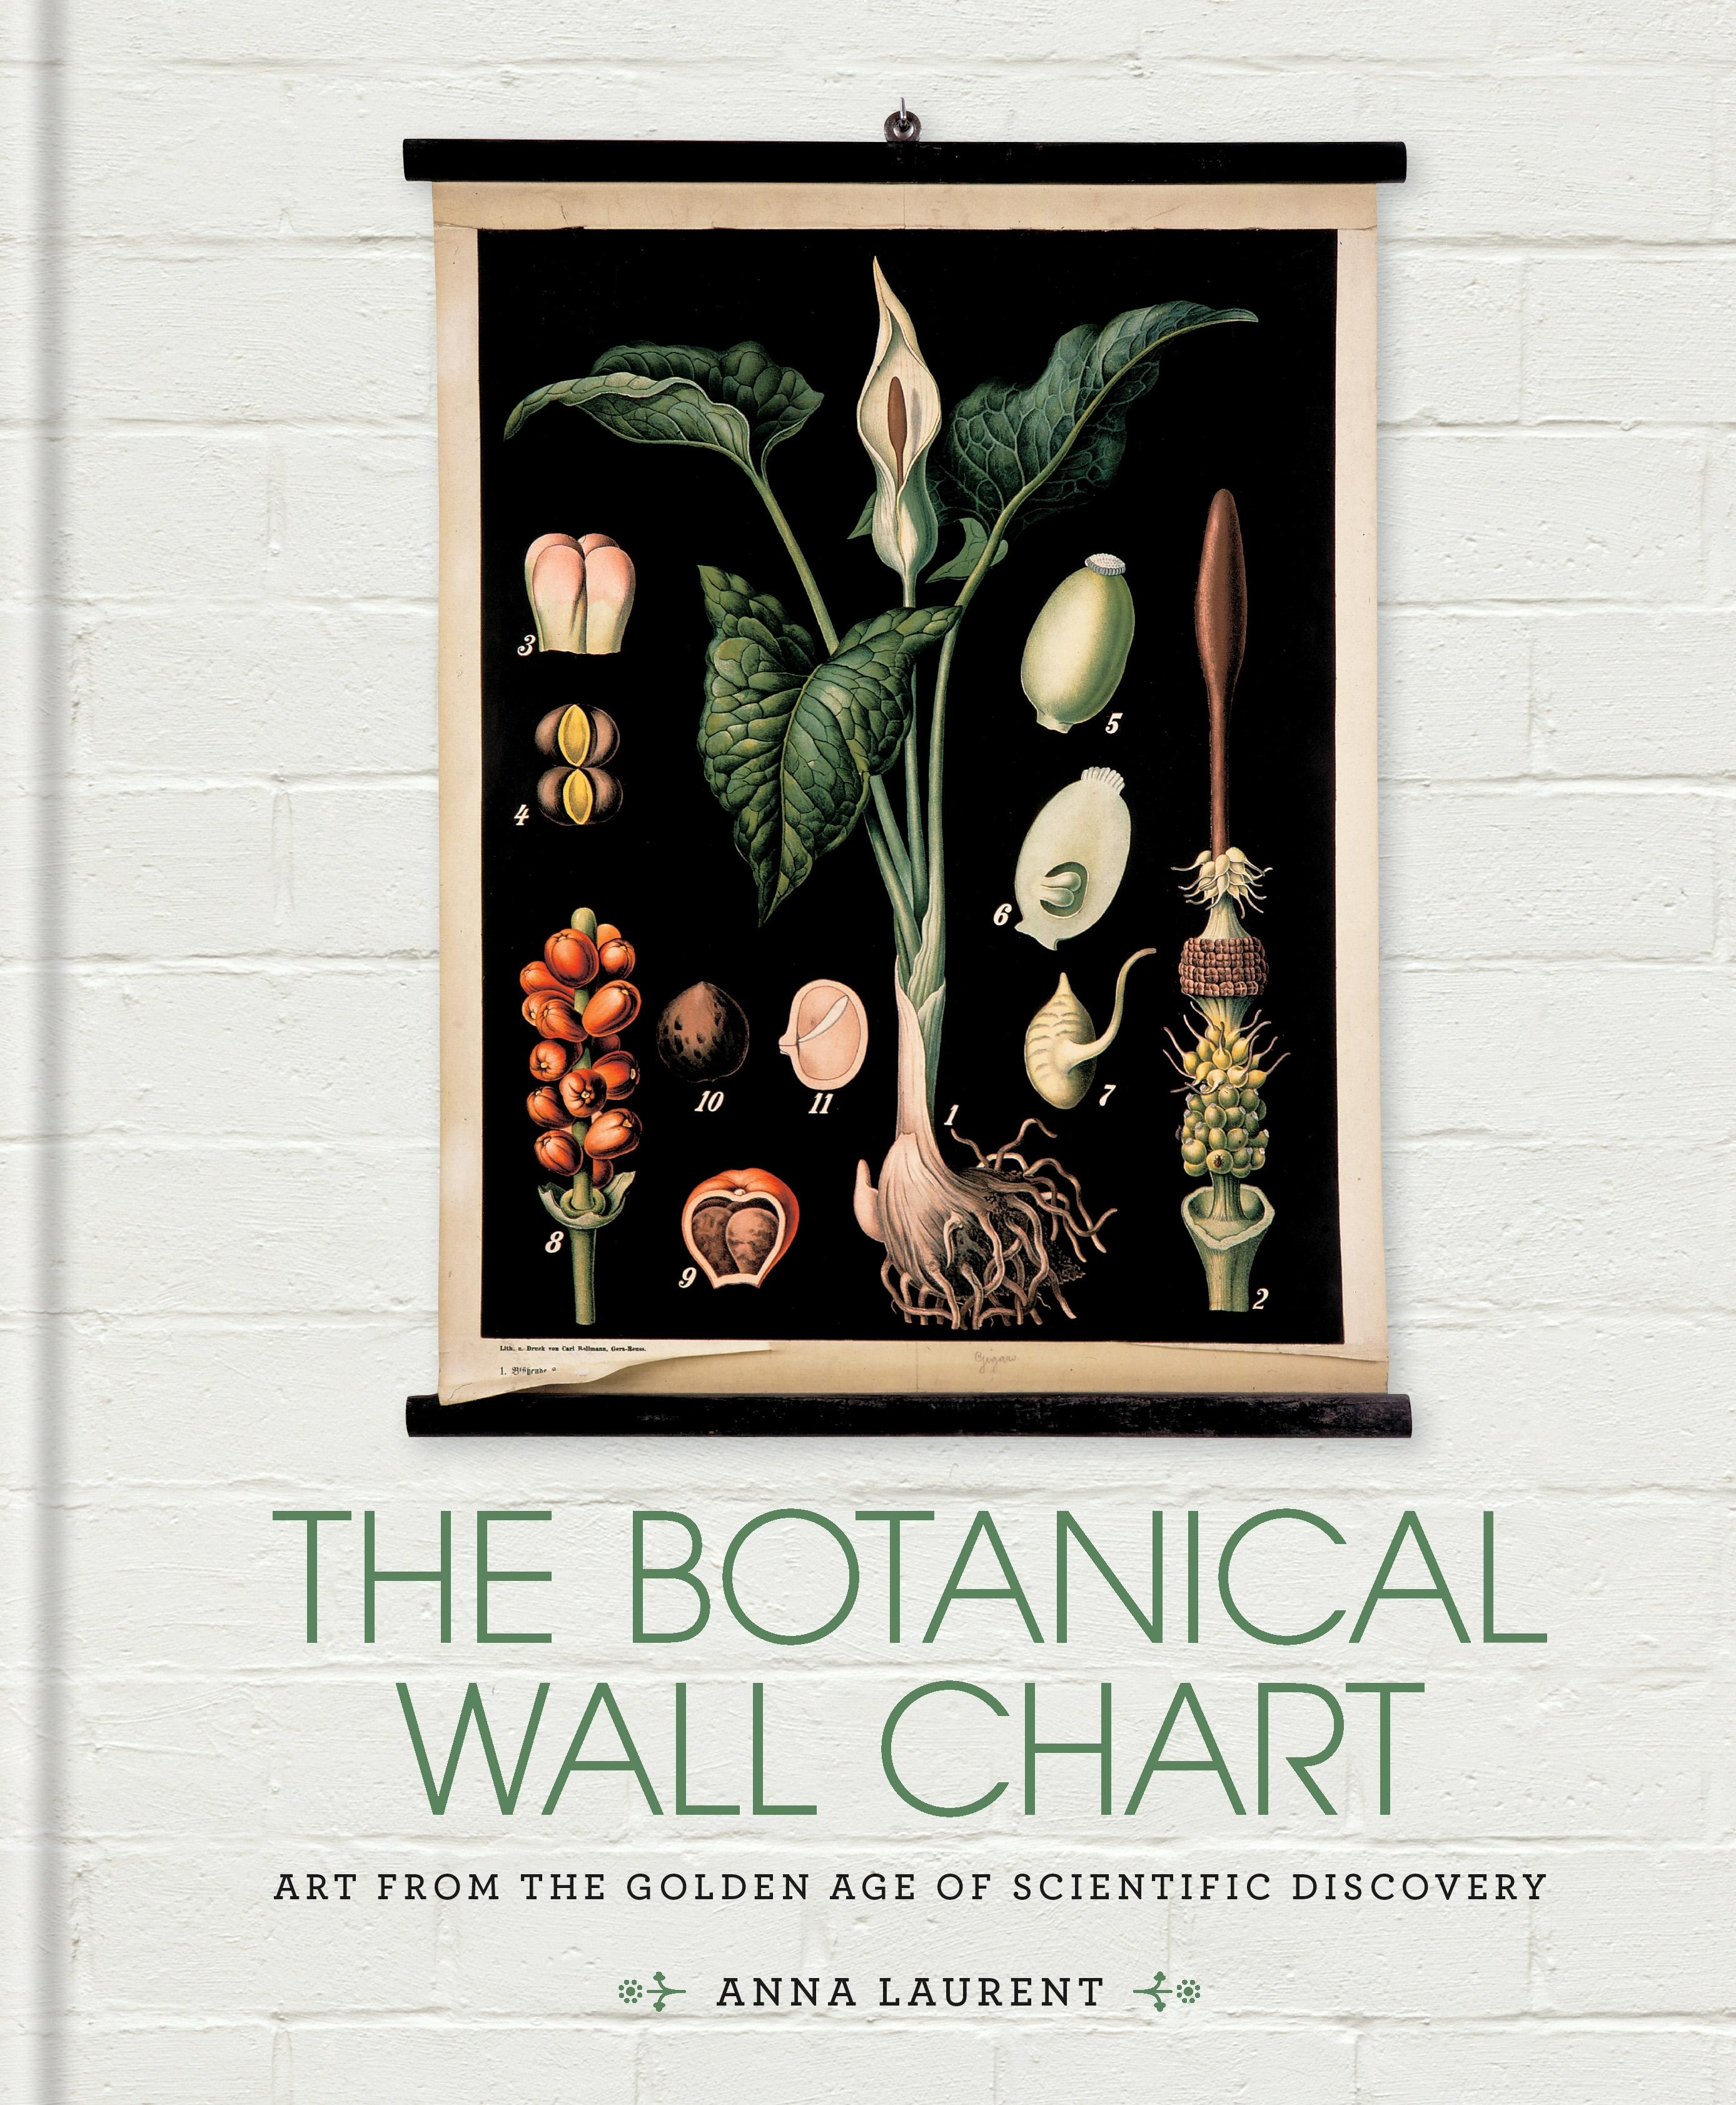 The Botanical Wall Chart: Art from the golden age of scientific discovery